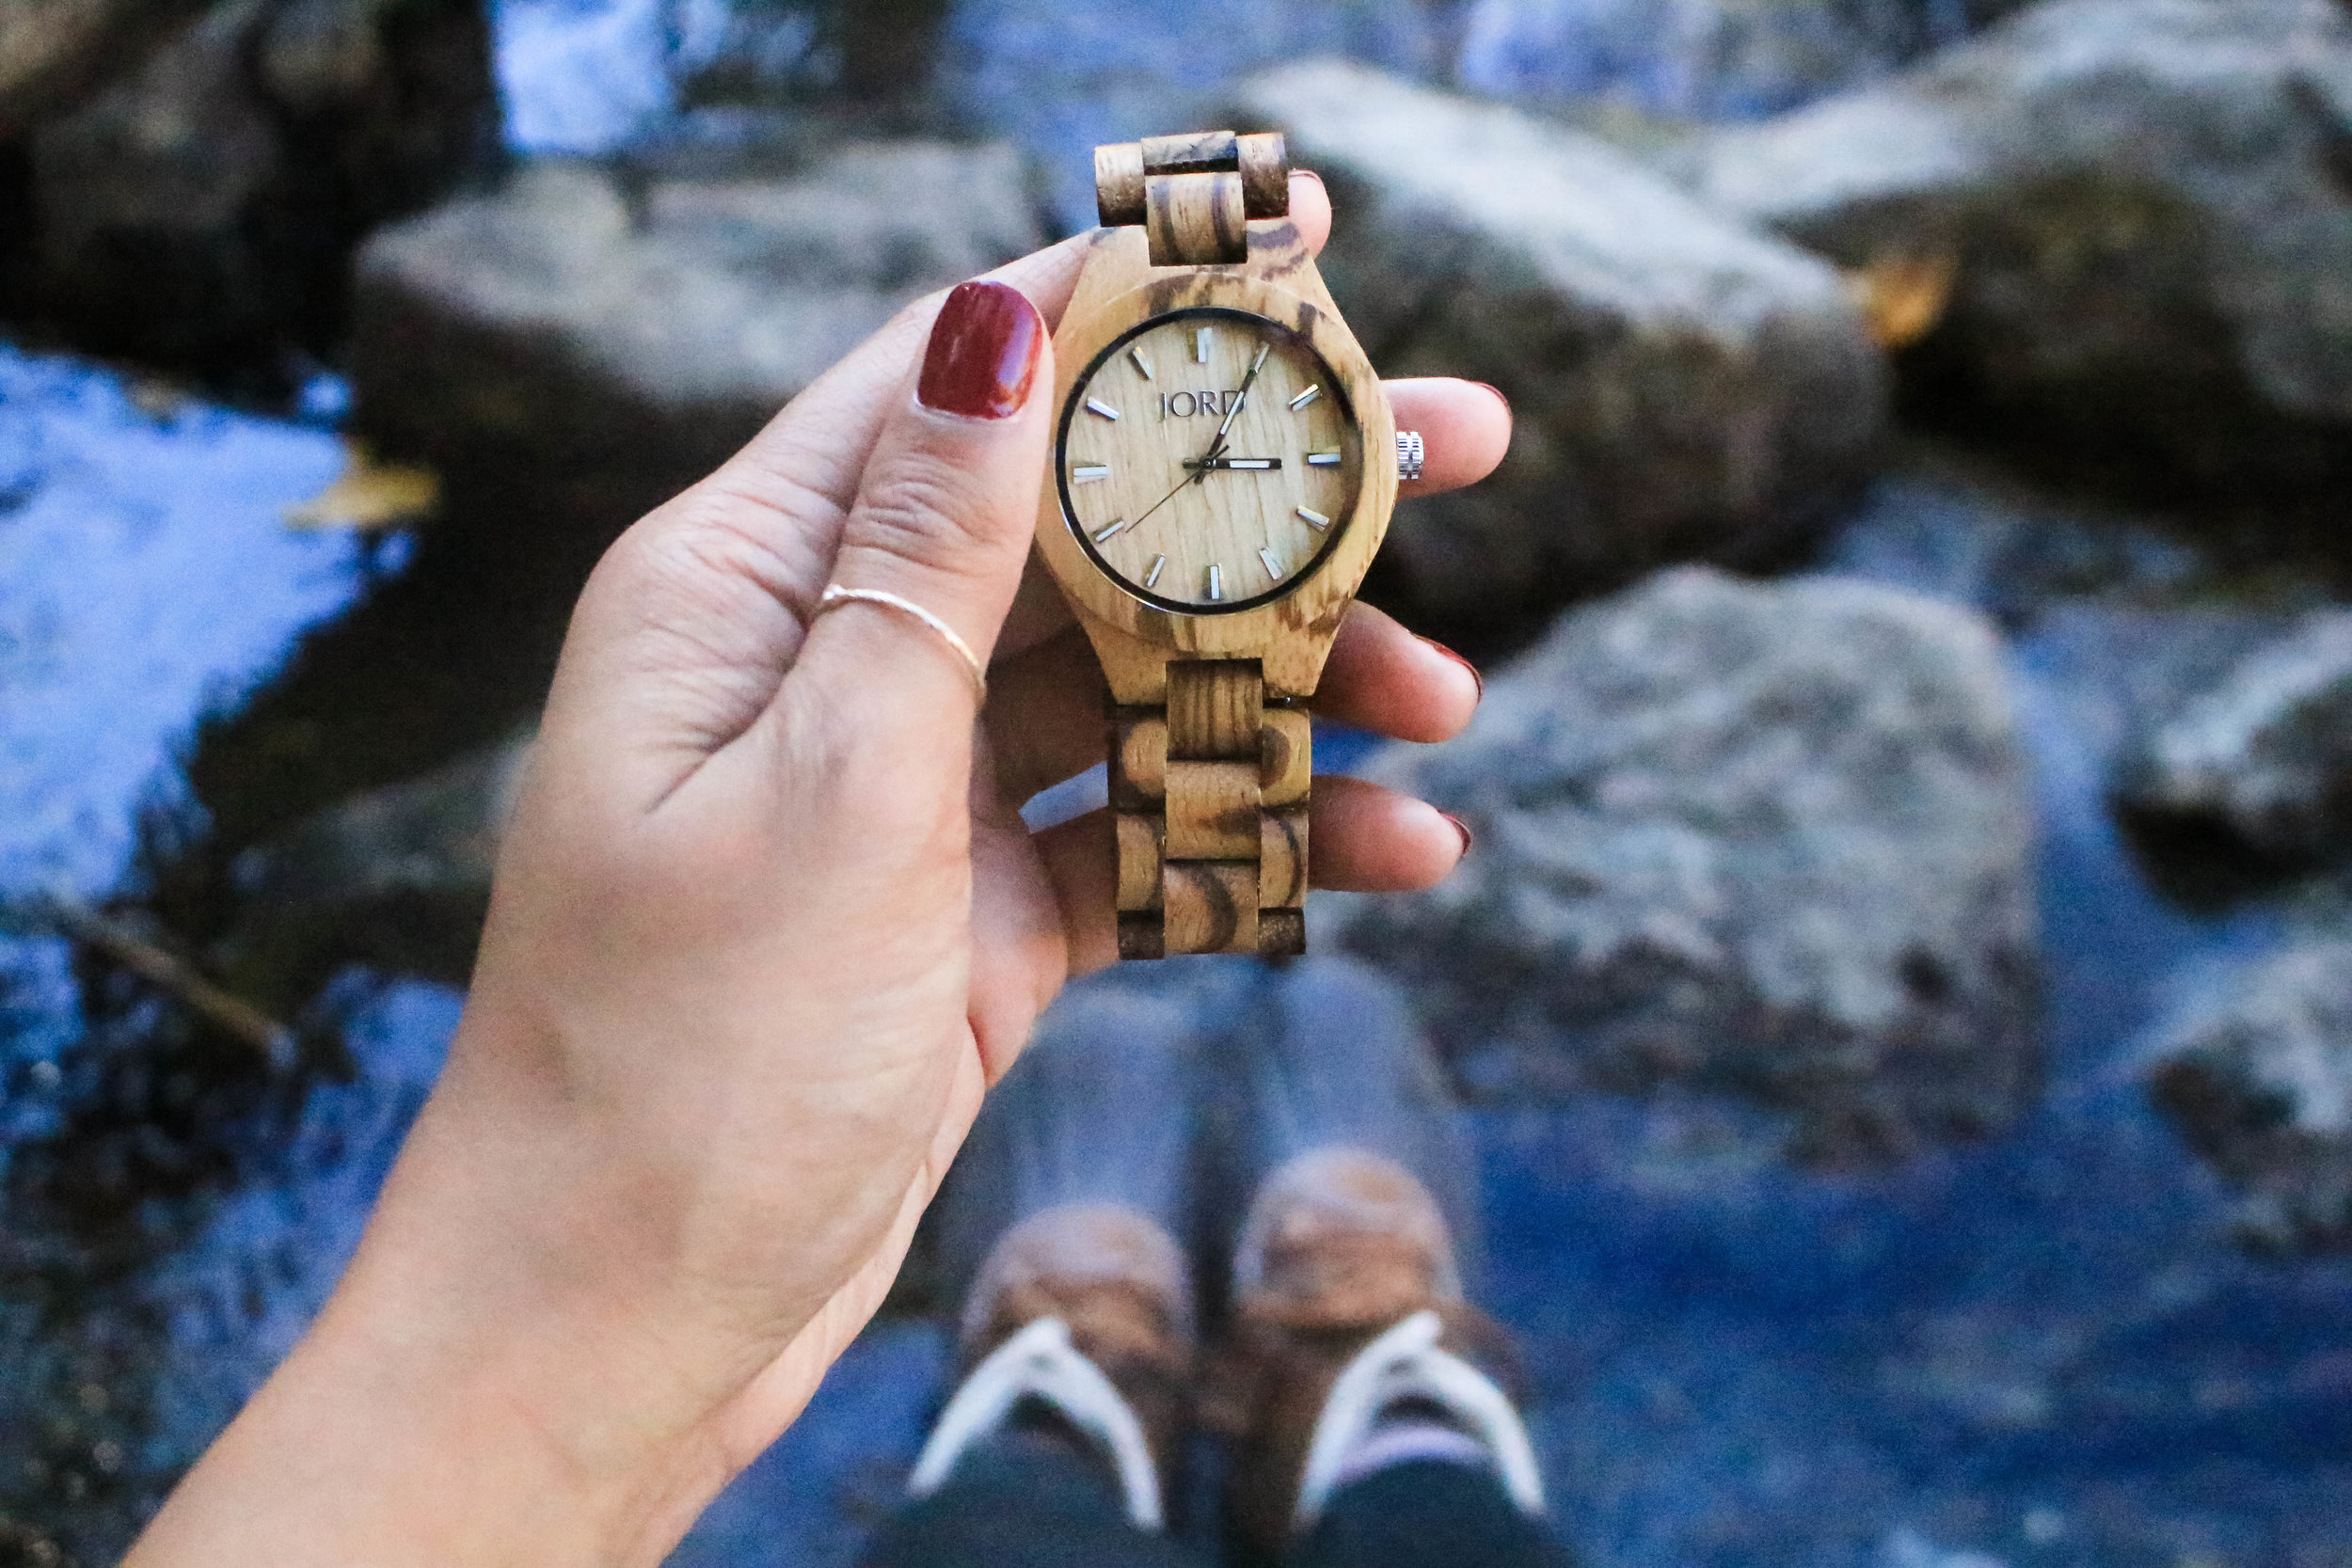 JORD WOOD WATCH MADE WITH SCRATCH RESISTANT GLASS MADE PERFECT FOR HIKING